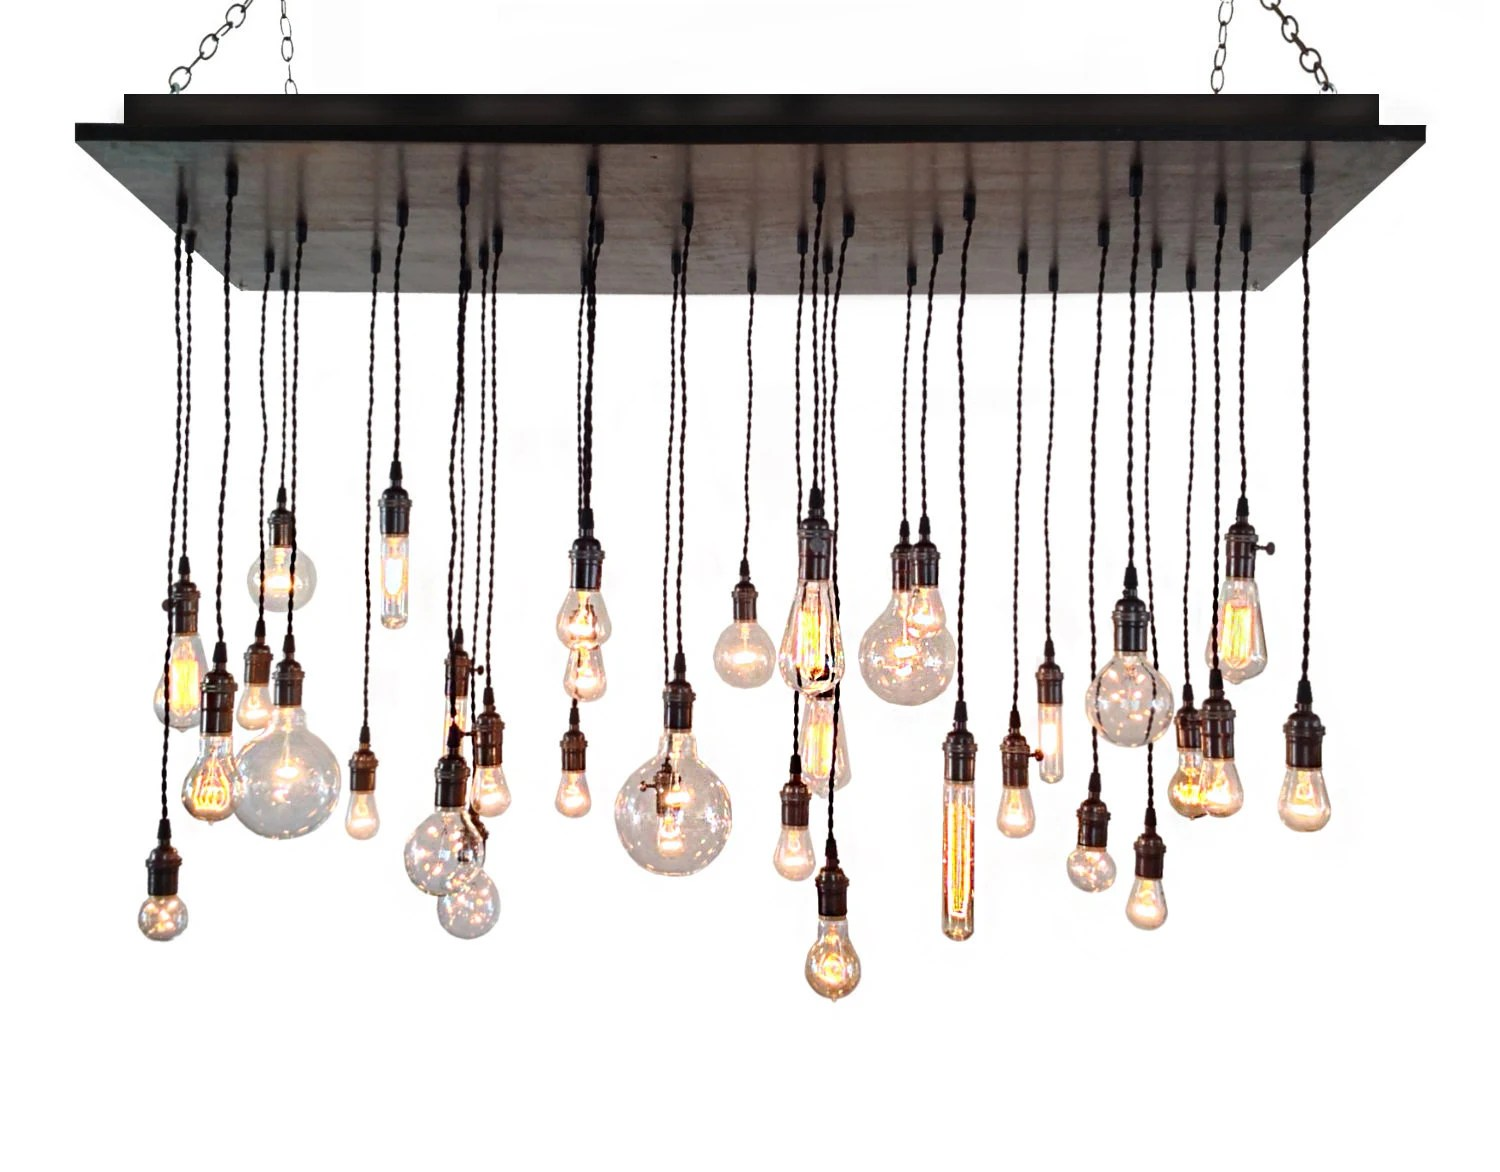 Beach Hanging Lights Industrial Chandelier Rustic Lighting Modern Chandelier